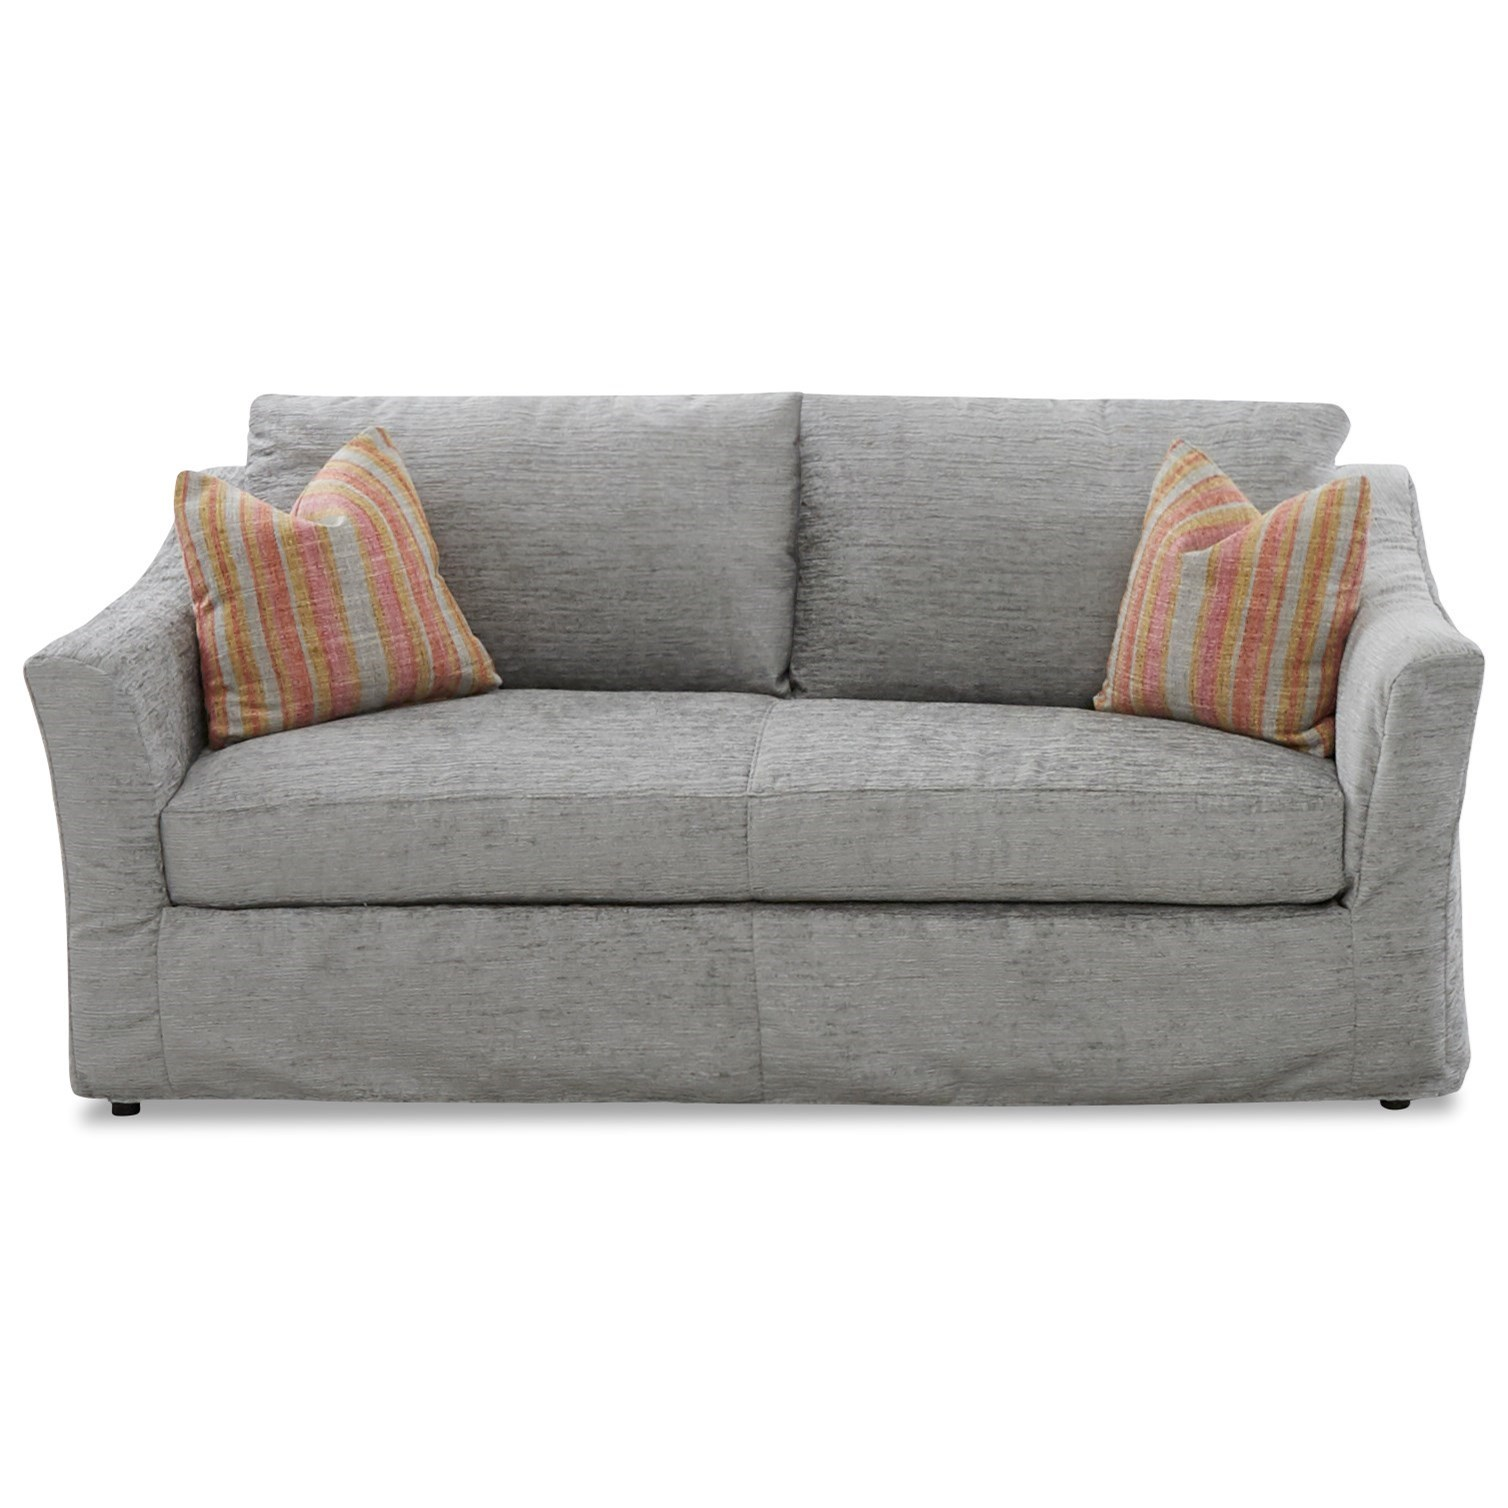 Slipcover Sofa with Down Blend Cushions